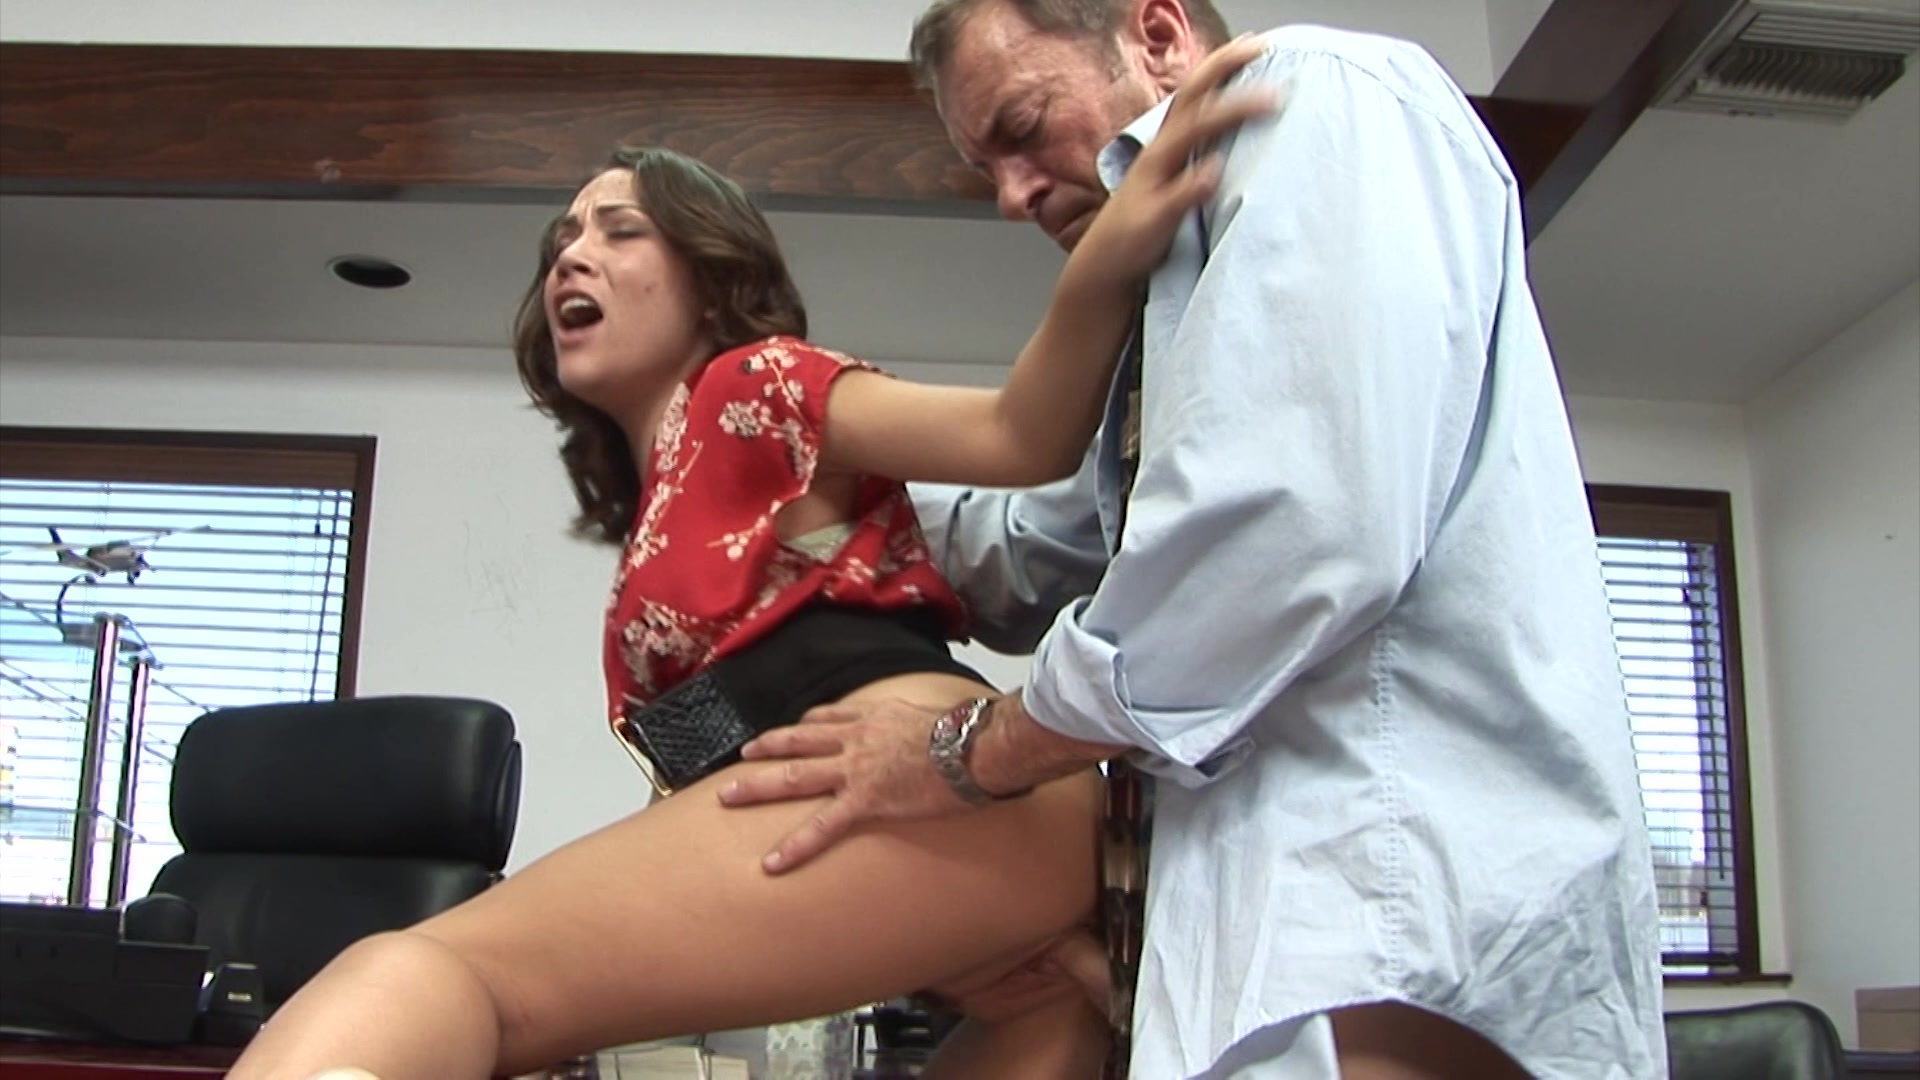 Office Of Submission Porn office love affair 2 (2019) | adult dvd empire